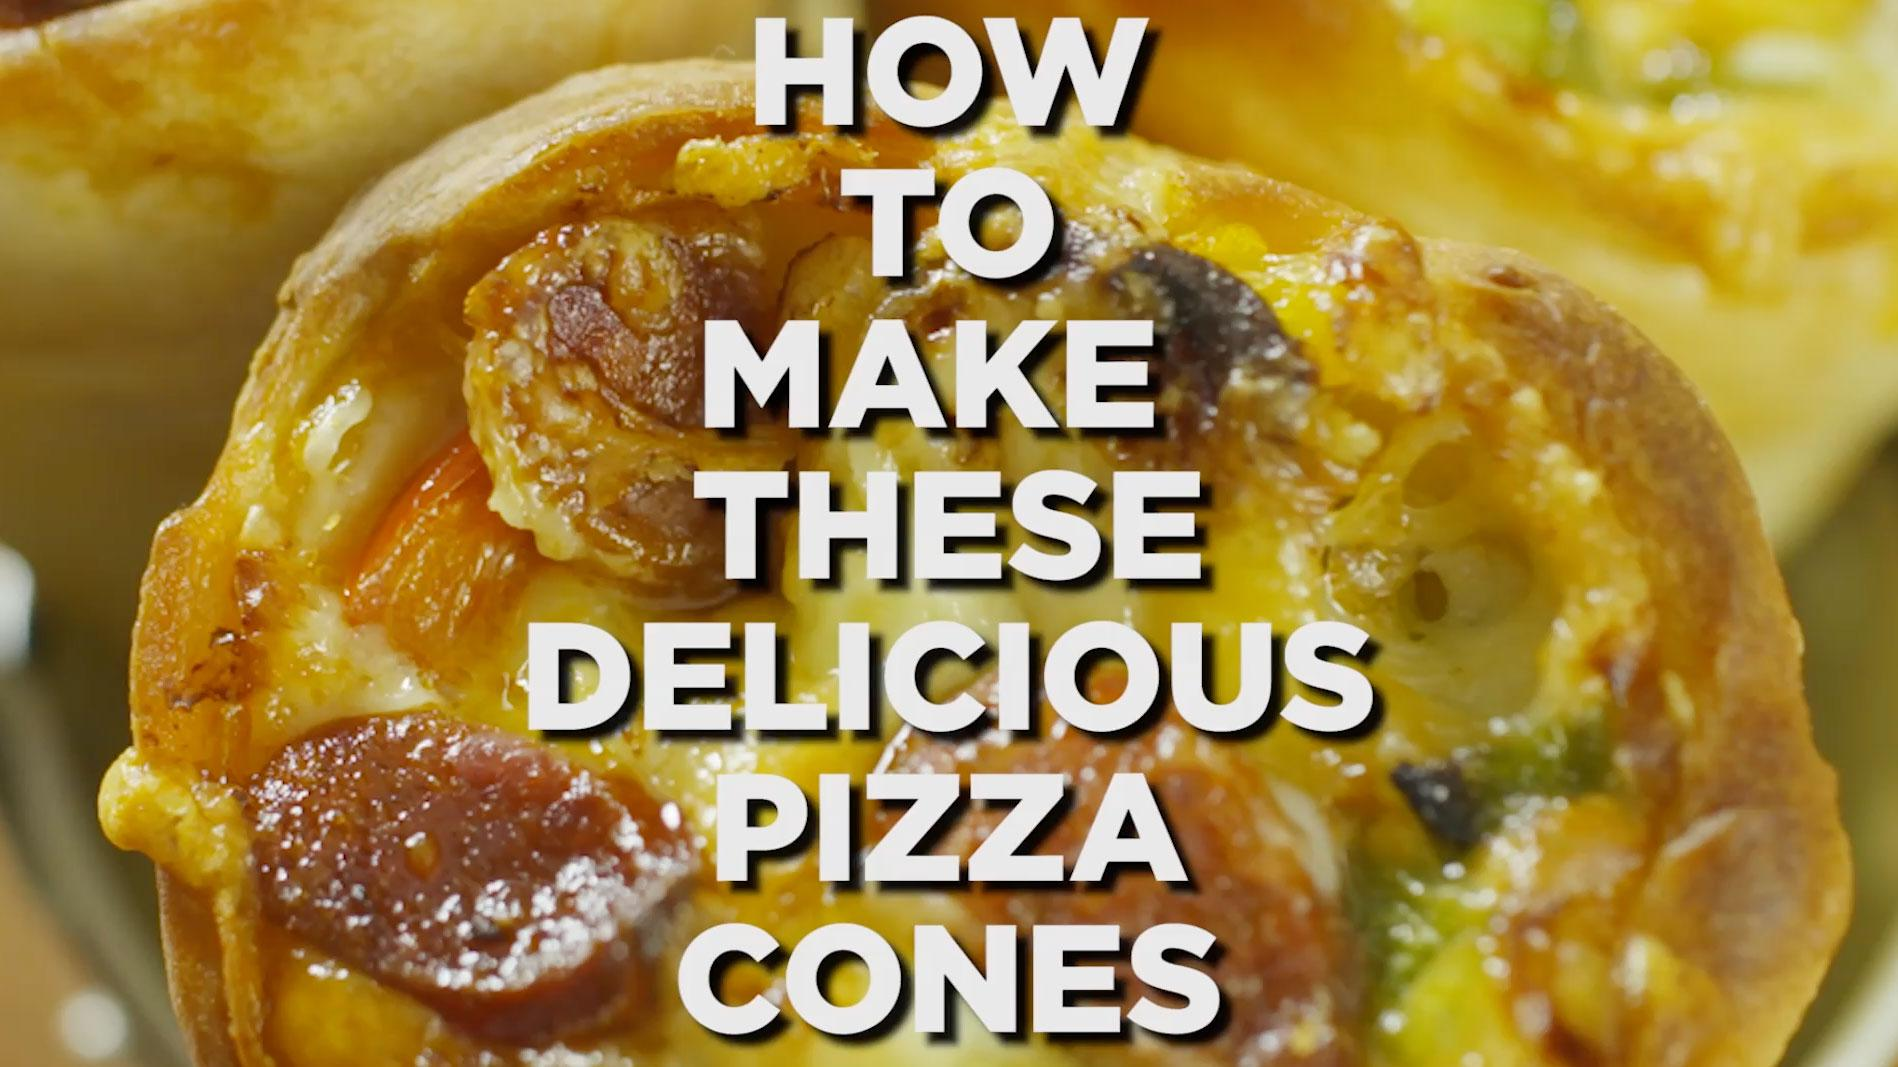 pizza cone how to make